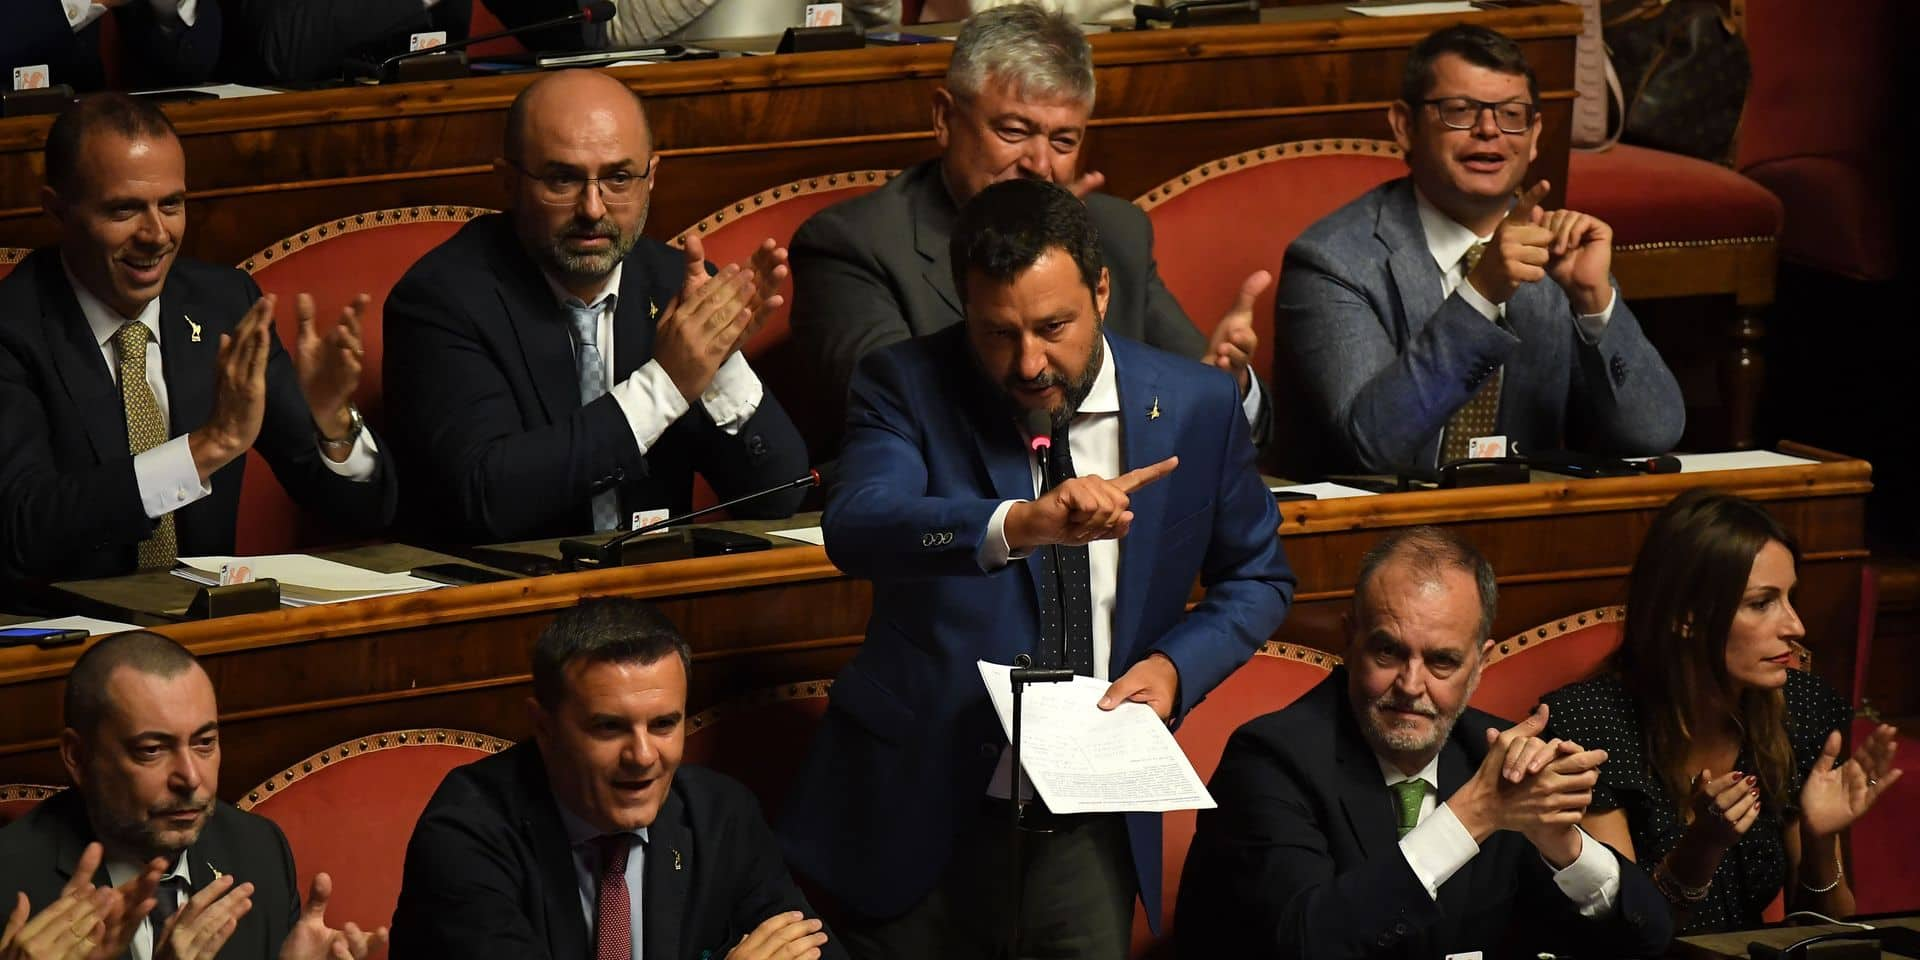 ITALY ROME SALVINI GOVERNMENT CRISIS